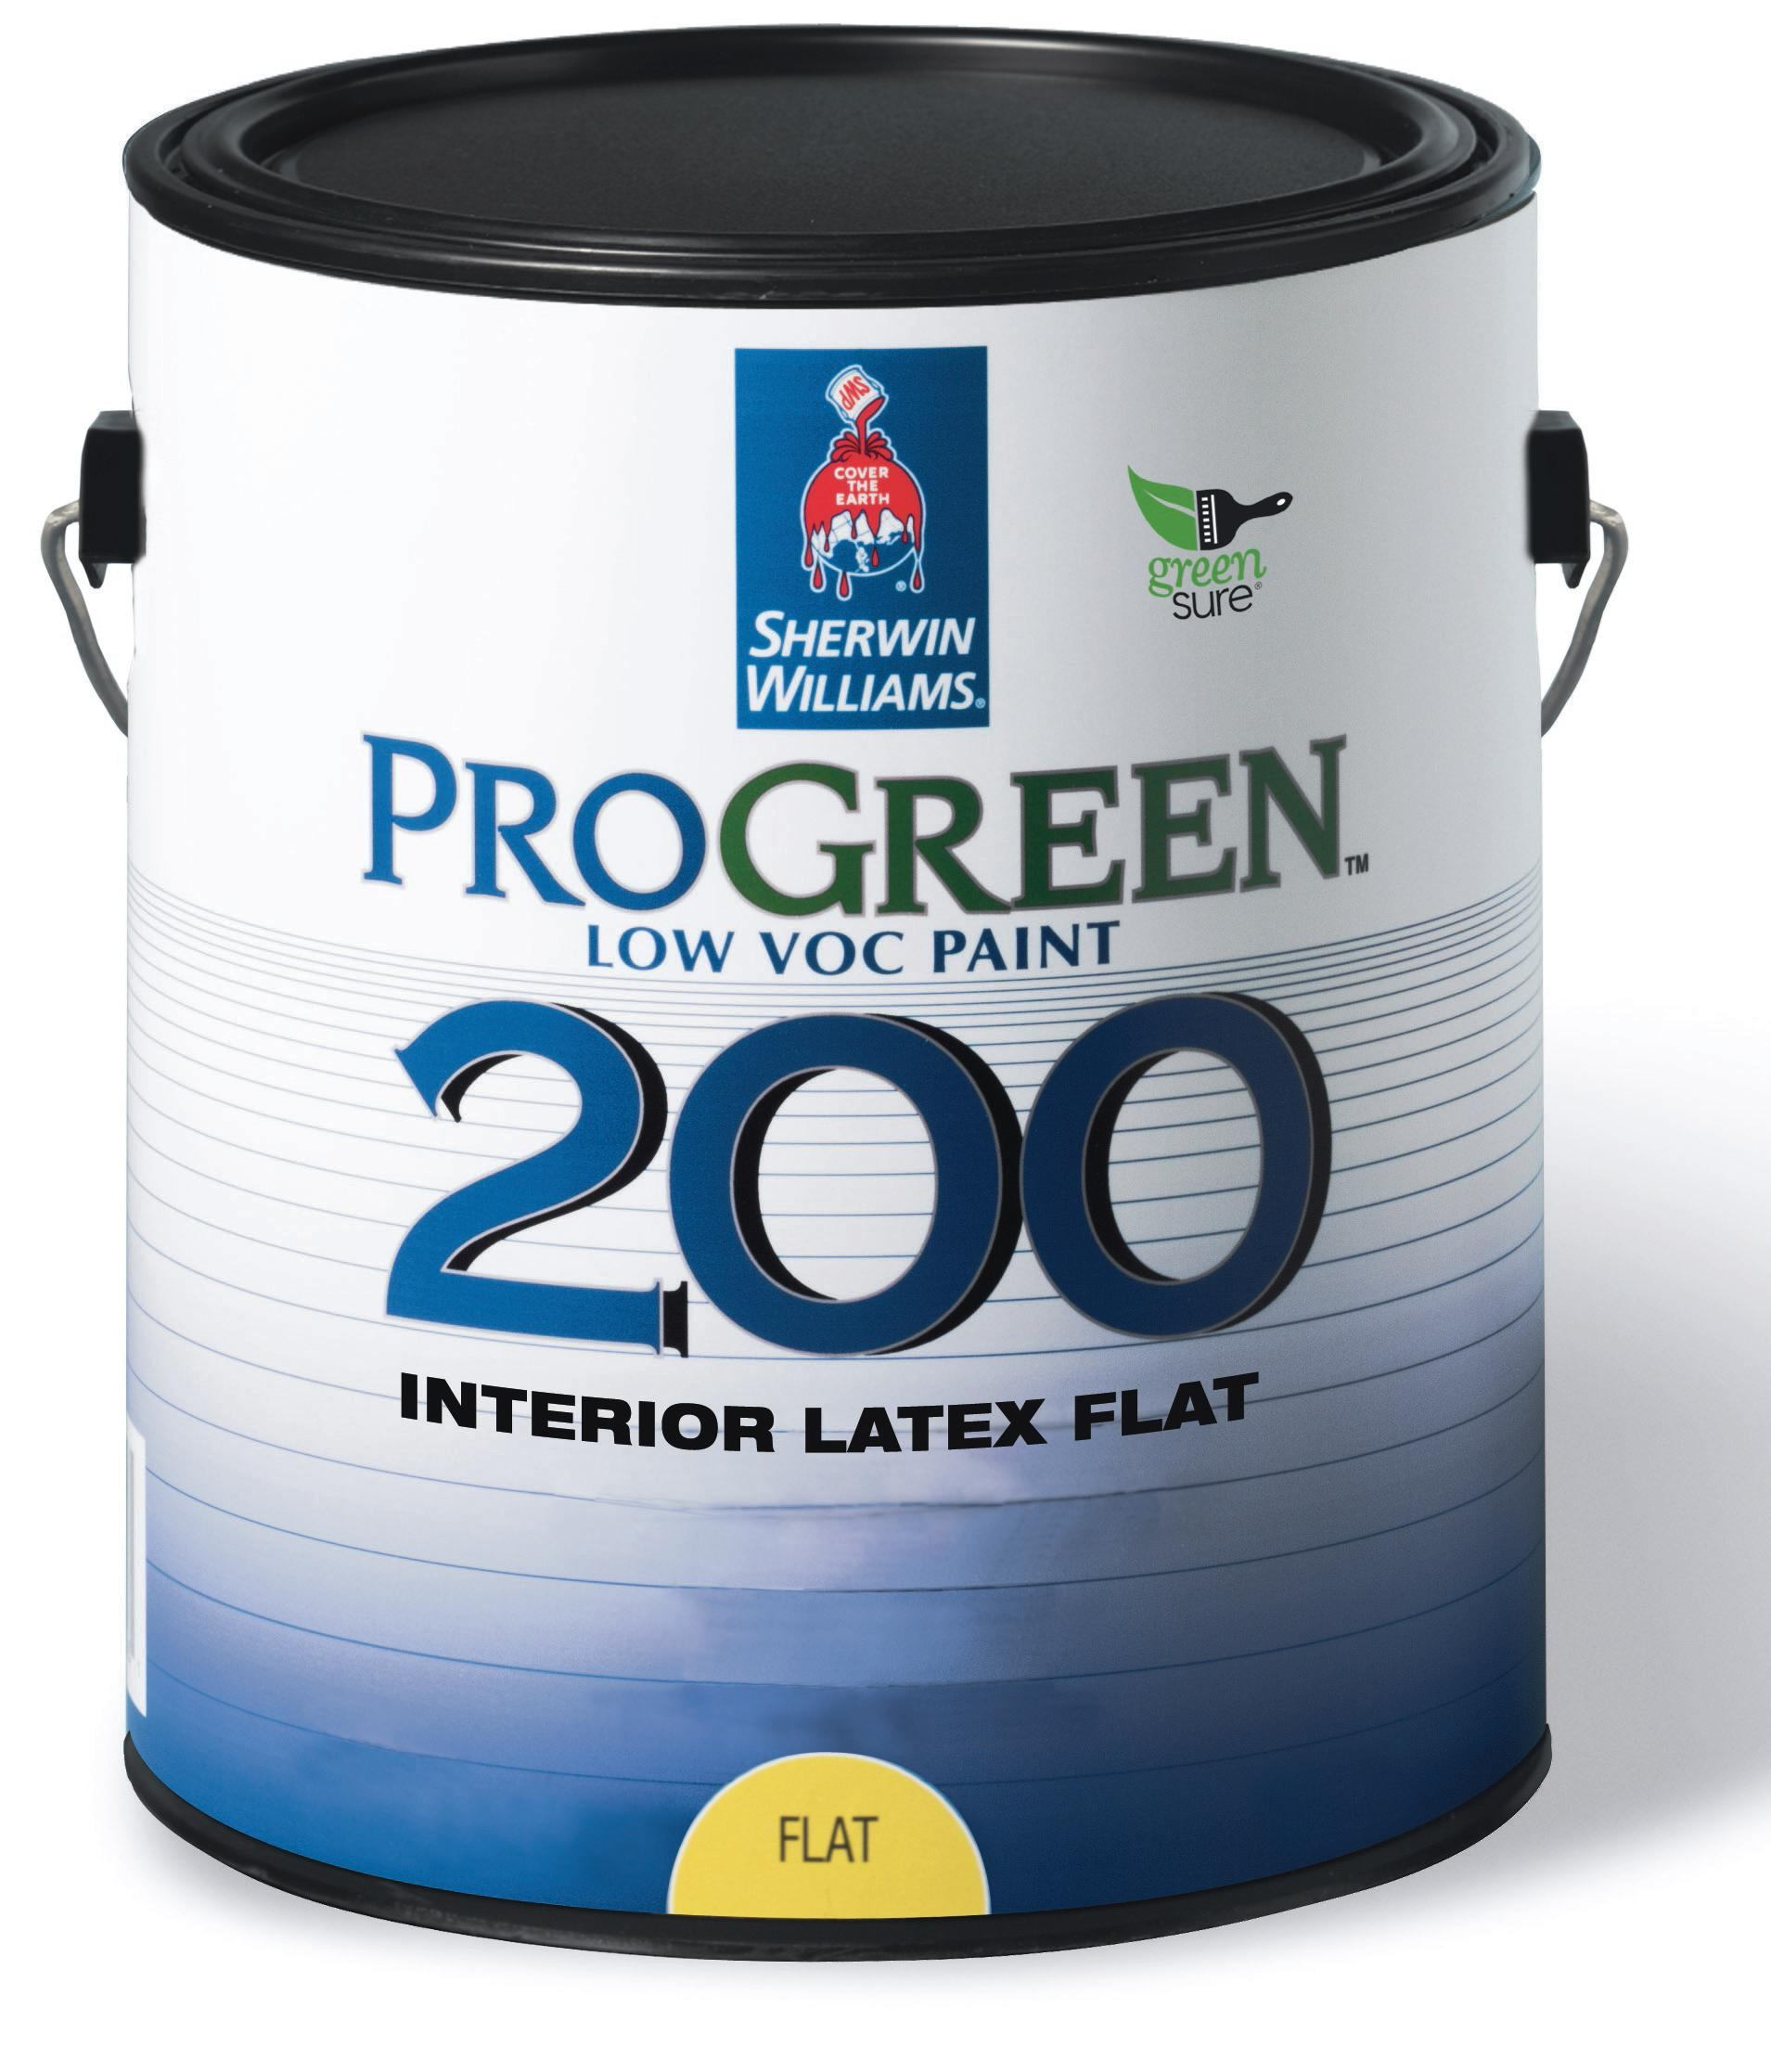 Progreen 200 From Sherwin Williams Architect Magazine Green Products Sustainability